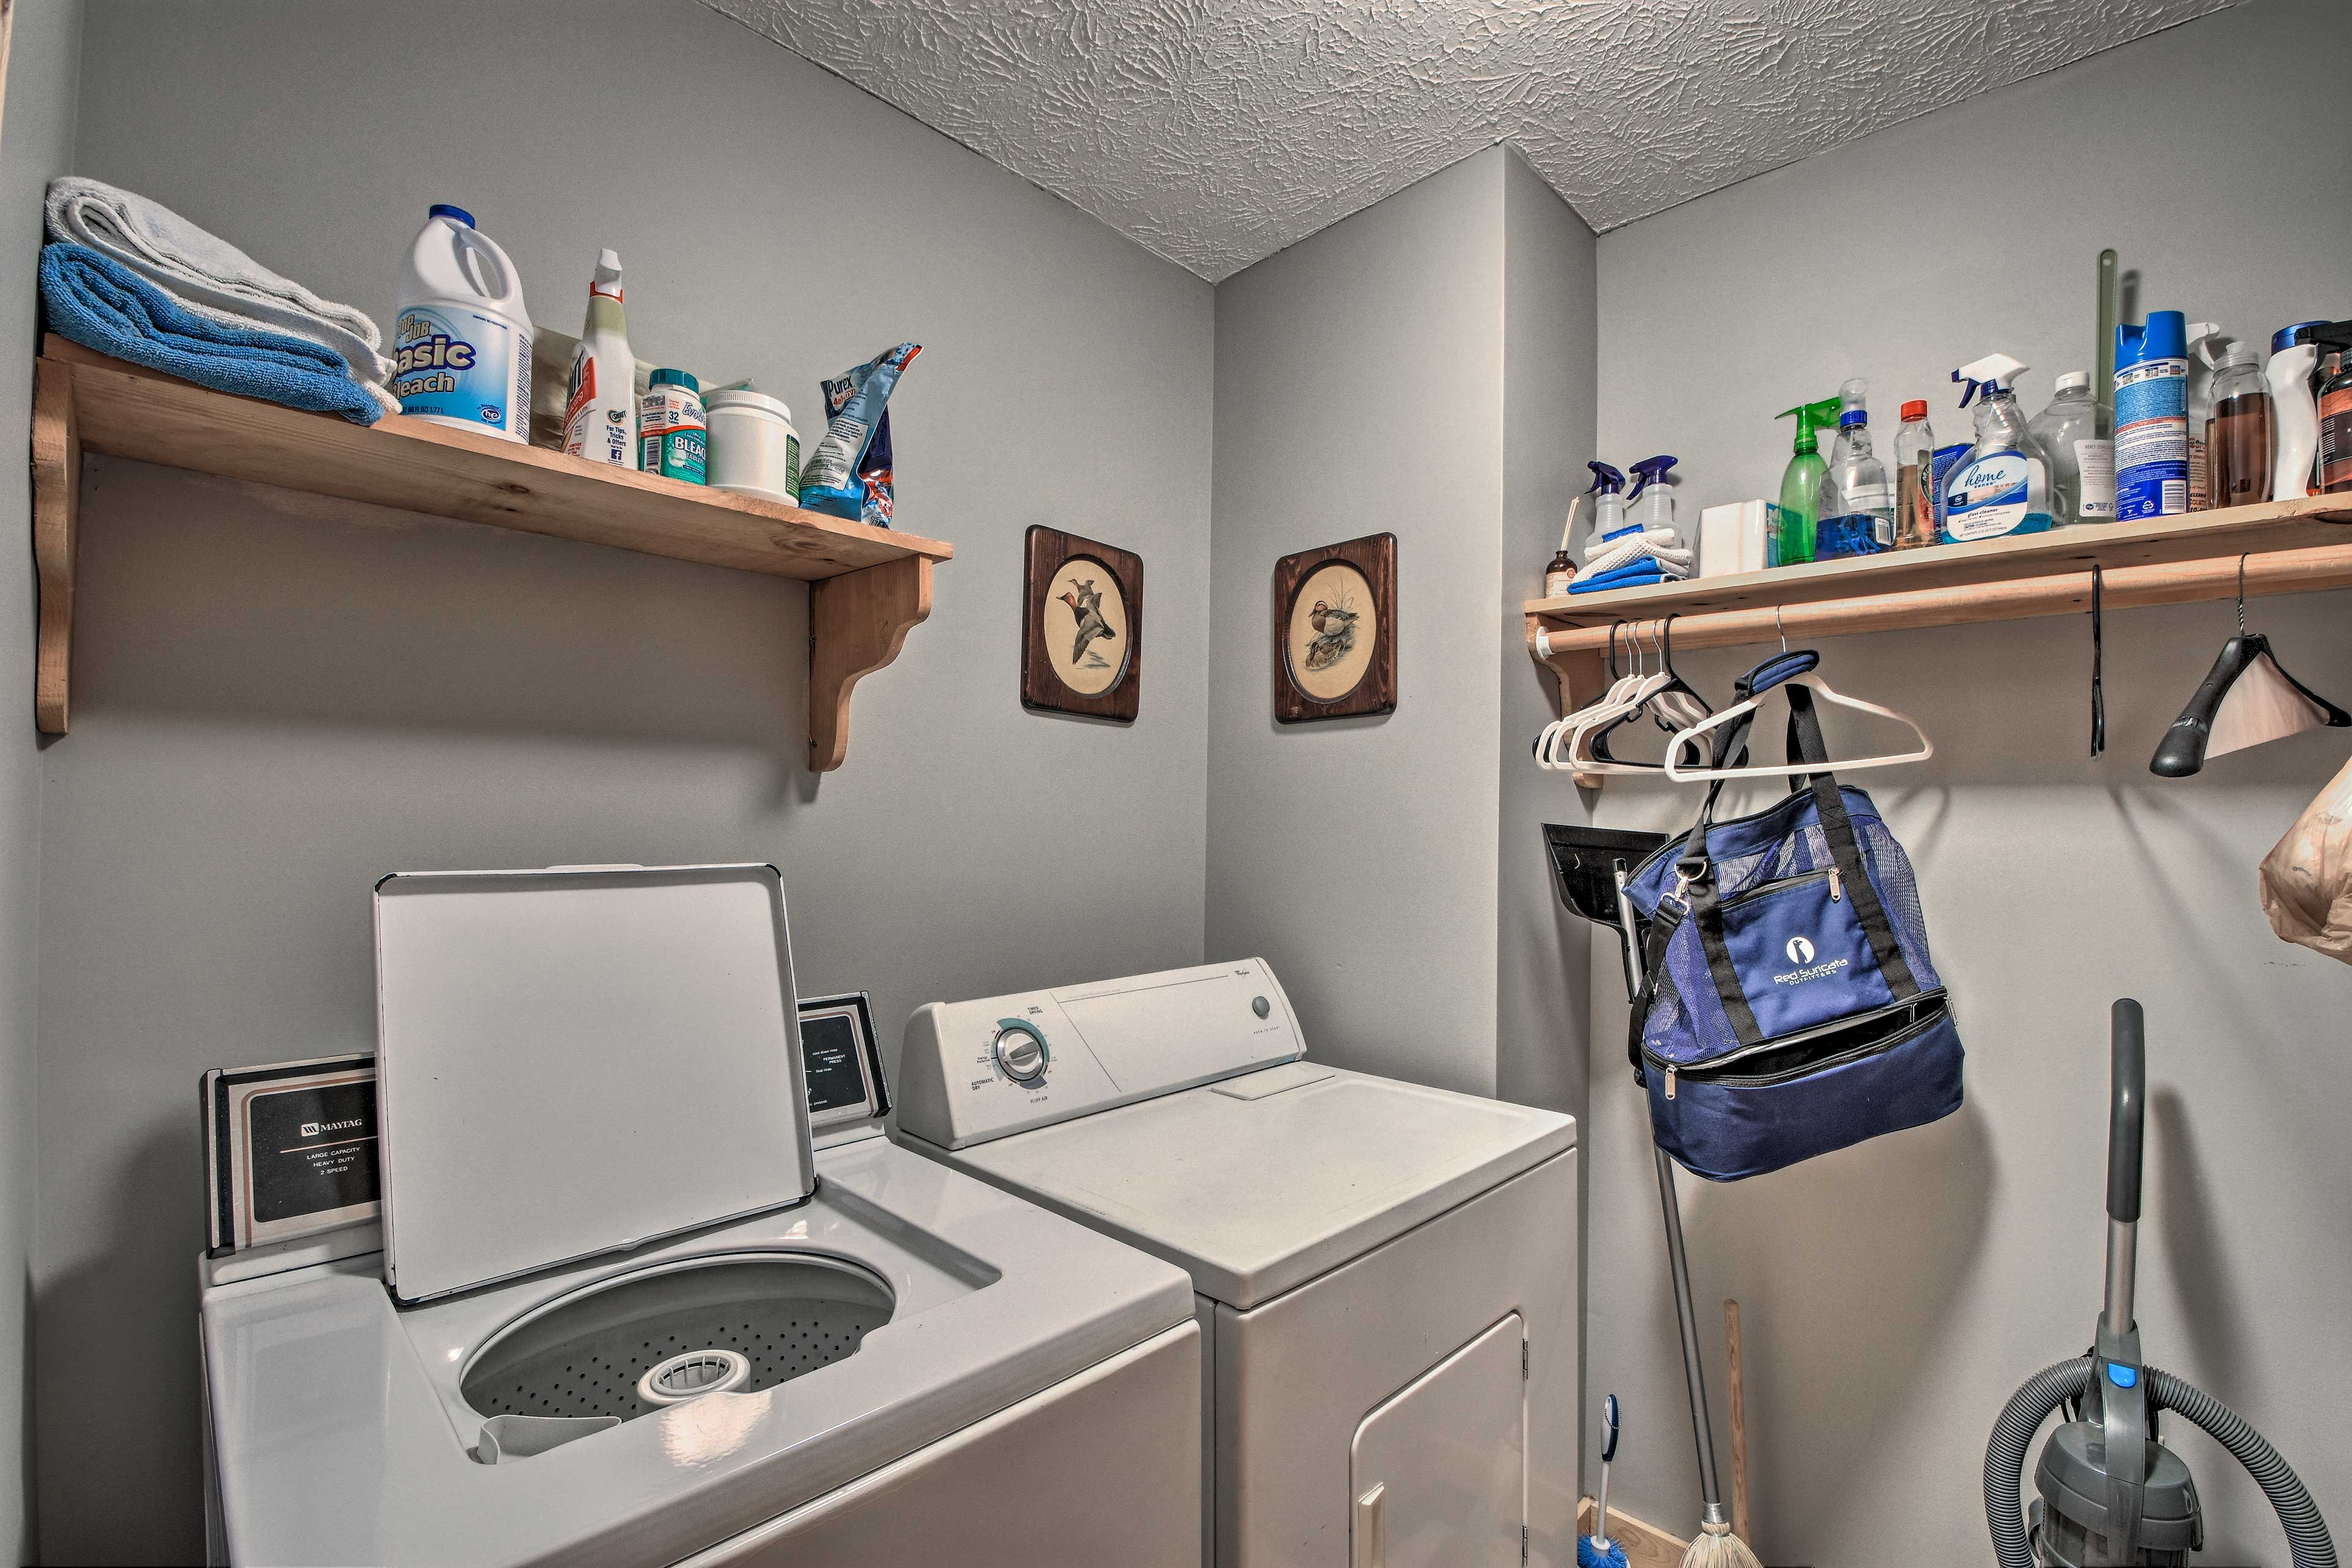 Keep your clothes fresh and clean with the laundry machines.